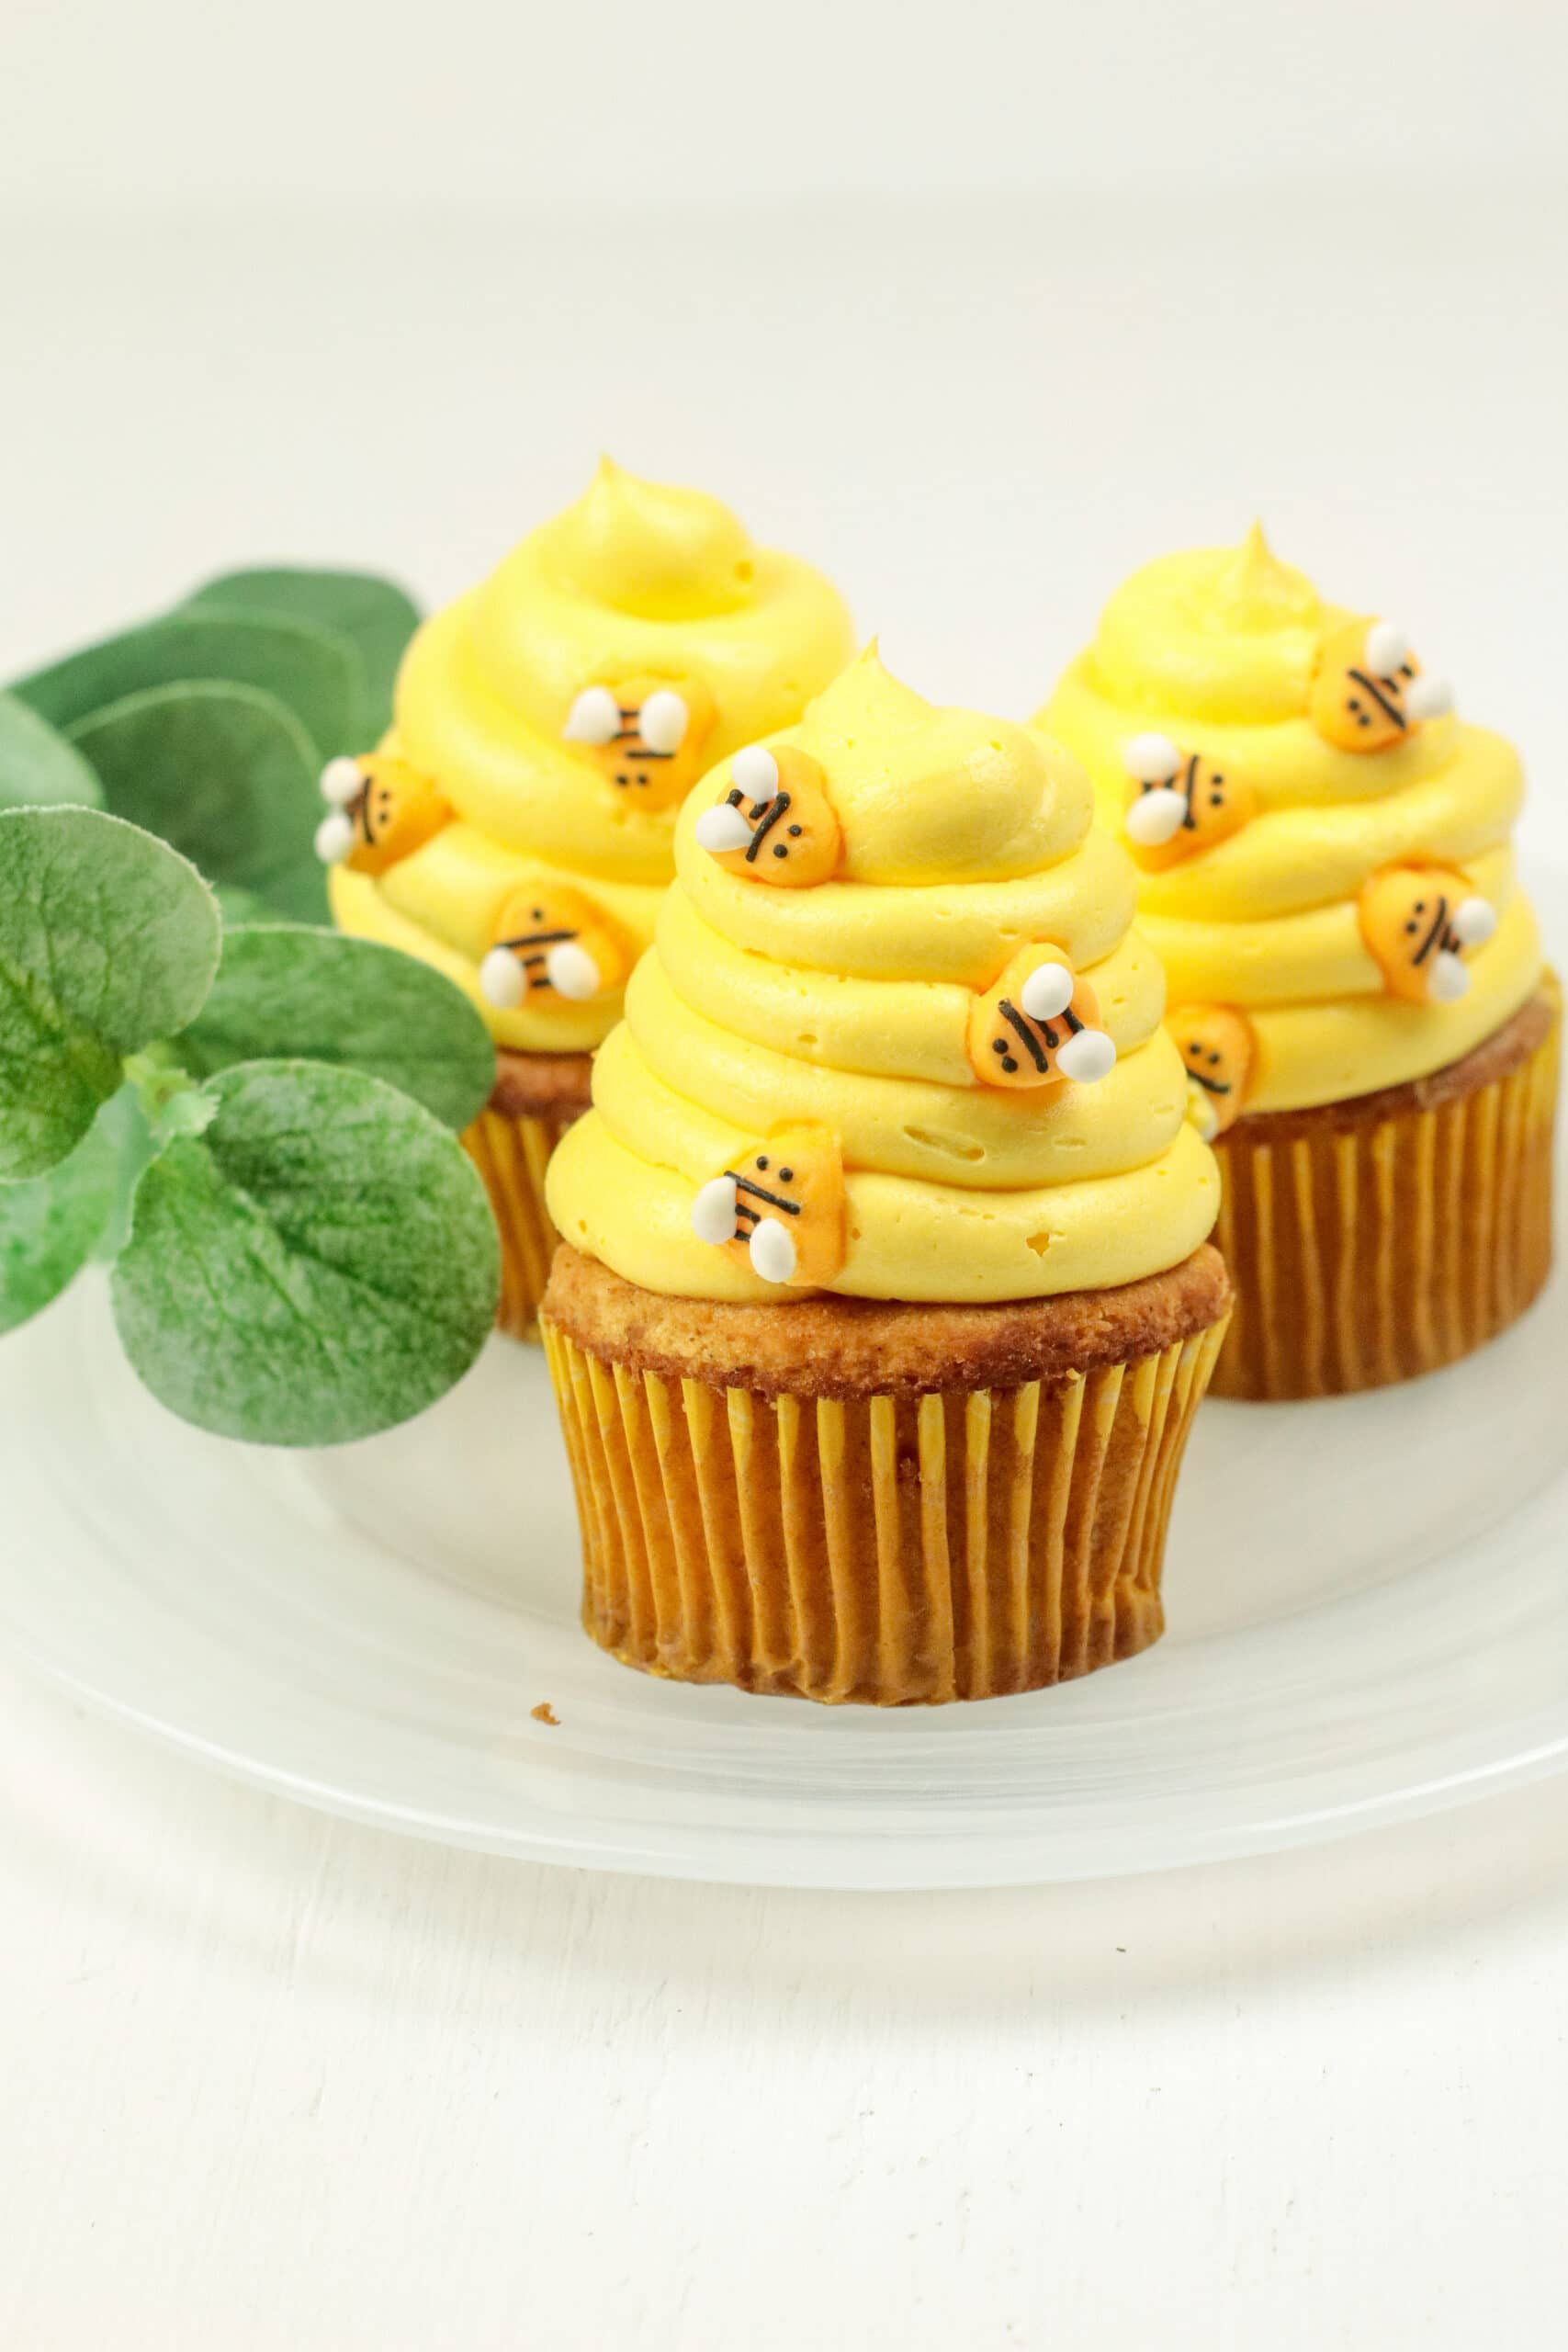 Bumblebee Honey Cupcakes with Honey Cream Cheese Frosting Plated. These Bumblebee Honey Cupcakes with Honey Cream Cheese Frosting are insanely delicious. Made with a touch of honey and cinnamon, these bumblebee inspired cupcakes are almost too cute to eat.